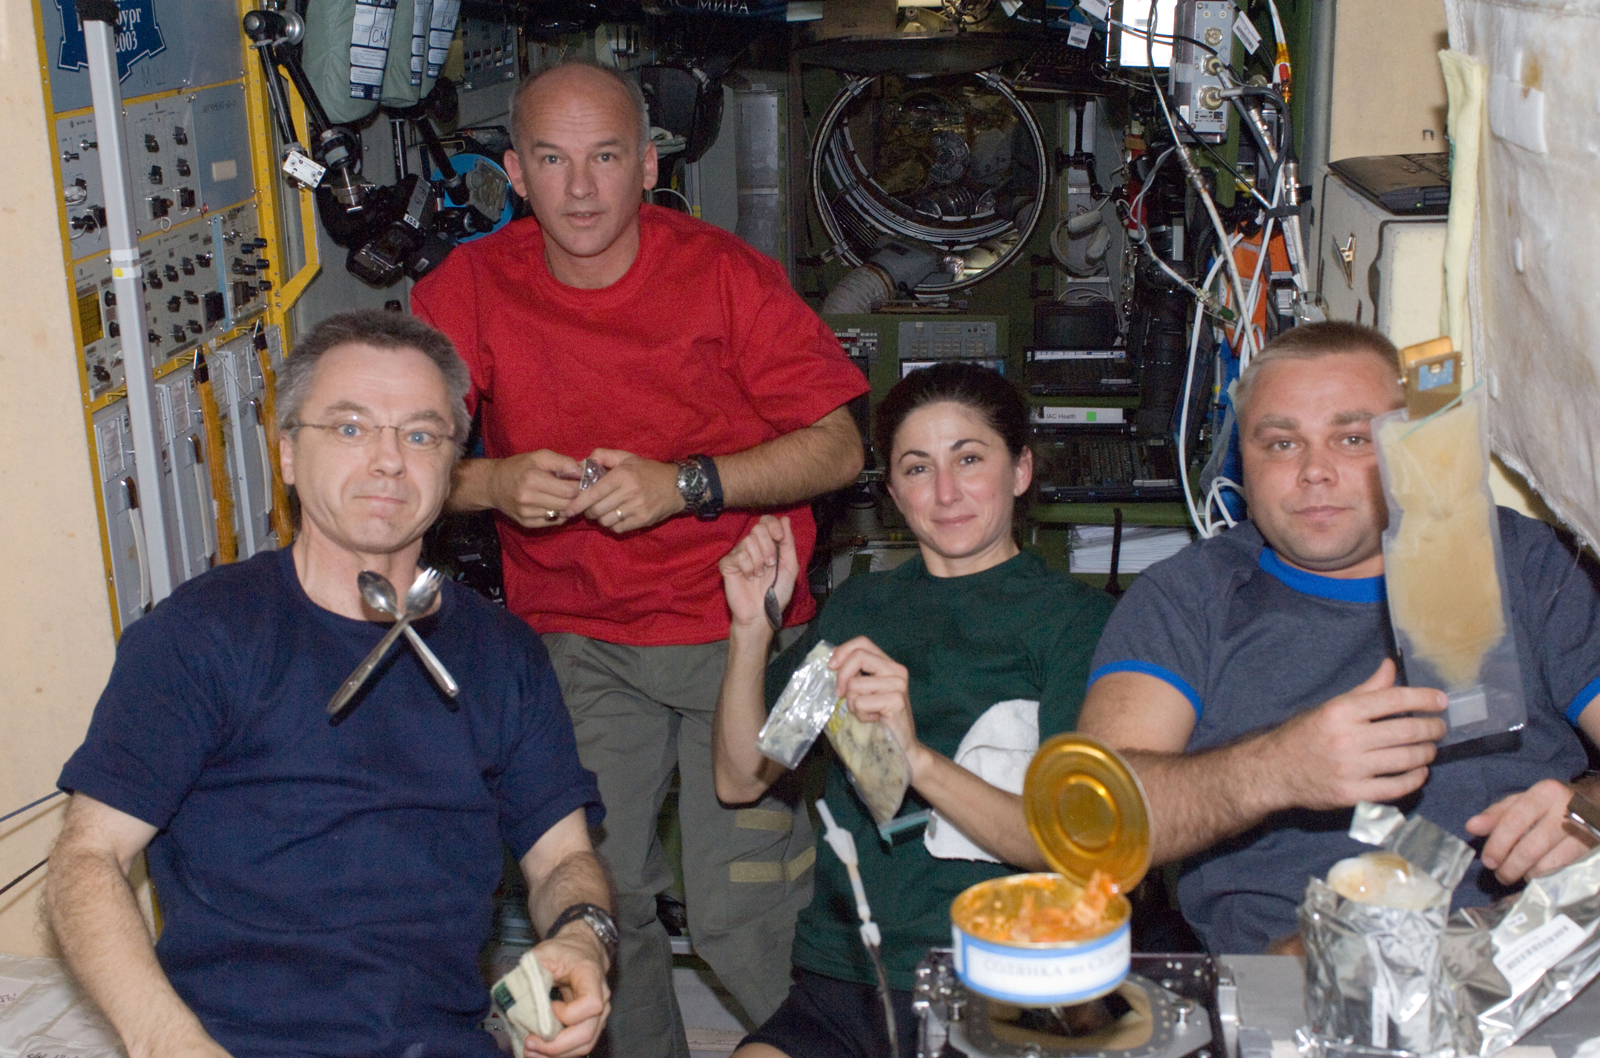 Canadian Space Agency astronaut Robert Thirsk (left), NASA astronauts Jeffrey Williams and Nicole Stott; along with Russian cosmonaut Maxim Suraev, all Expedition 21 flight engineers, share a meal at the galley in the Zvezda Service Module of the ISS. Pho